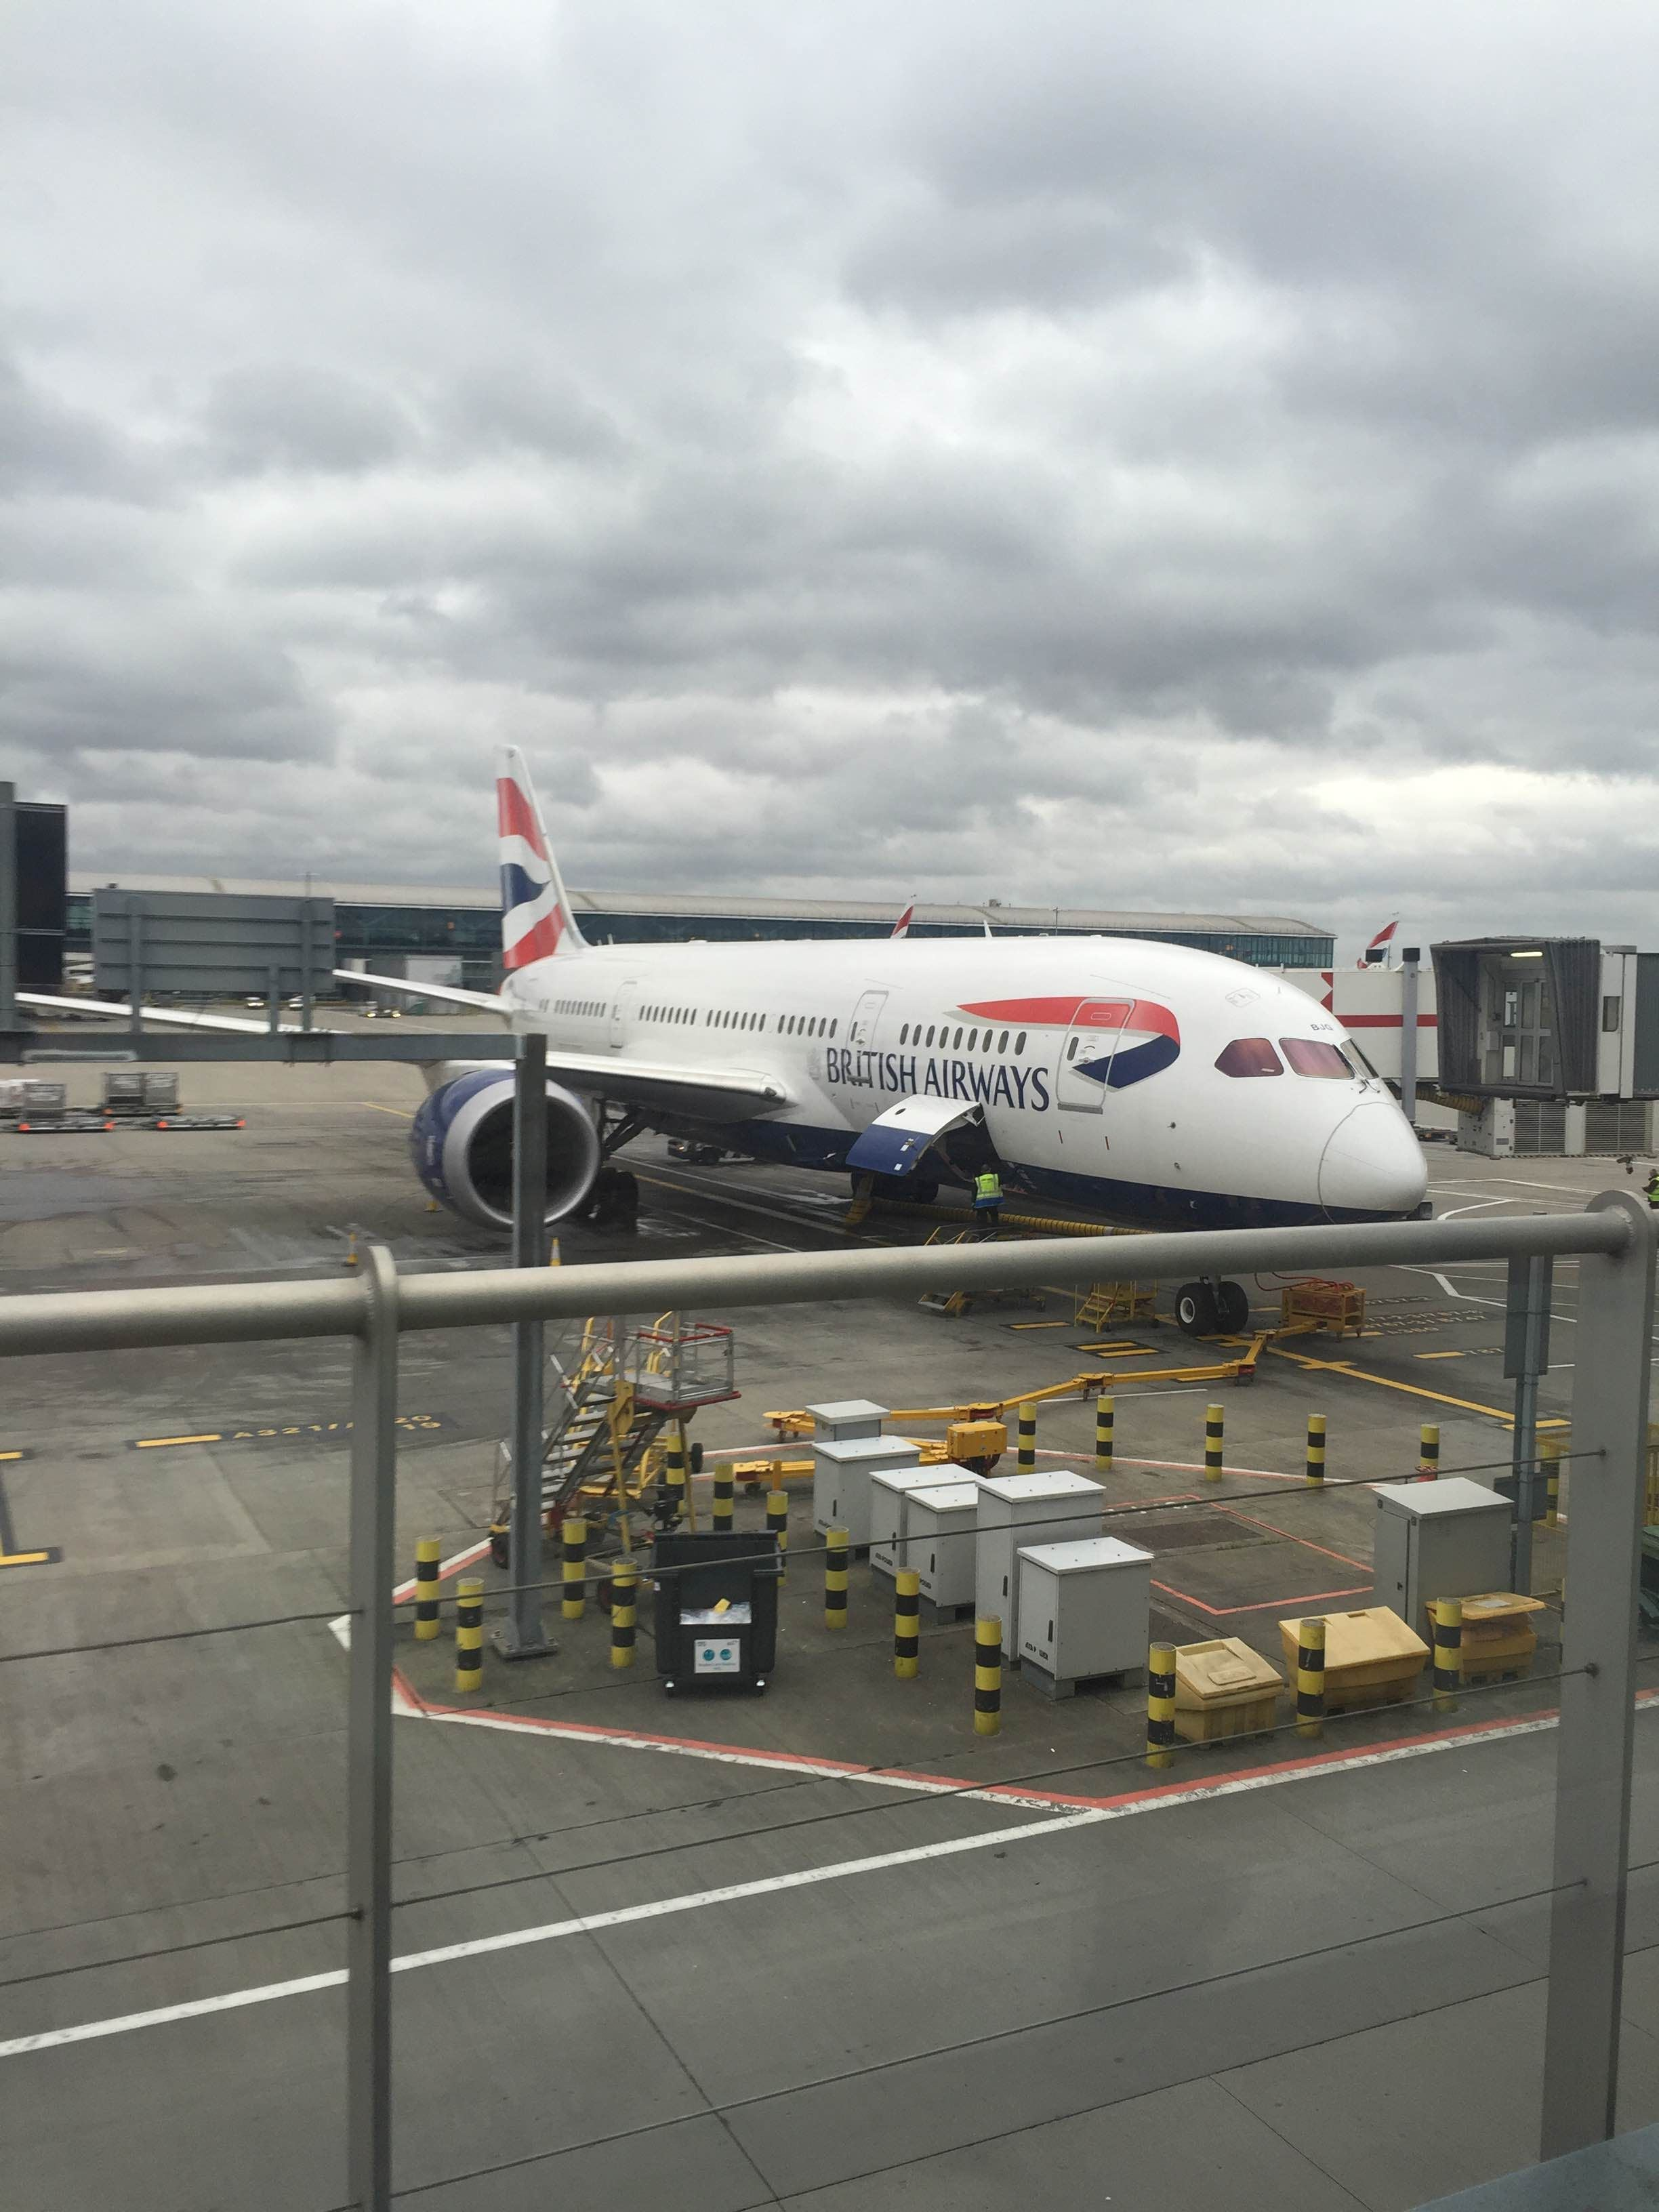 Despegue en Aeropuerto de Londres - Heathrow